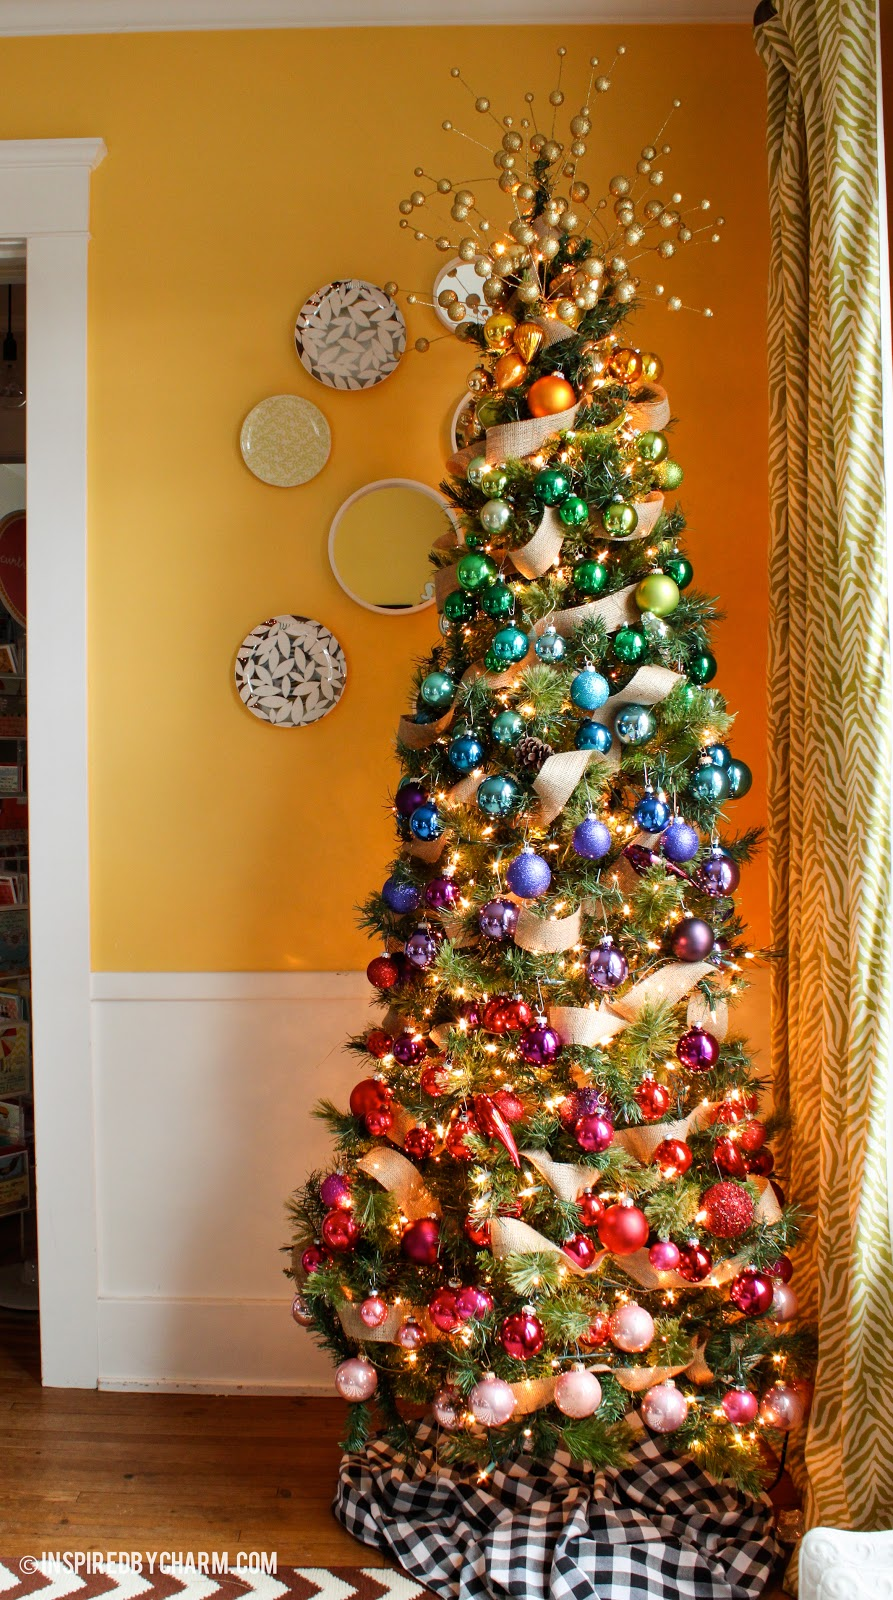 ad christmas tree ideas for an unforgettable holiday - Colorful Christmas Tree Decorations